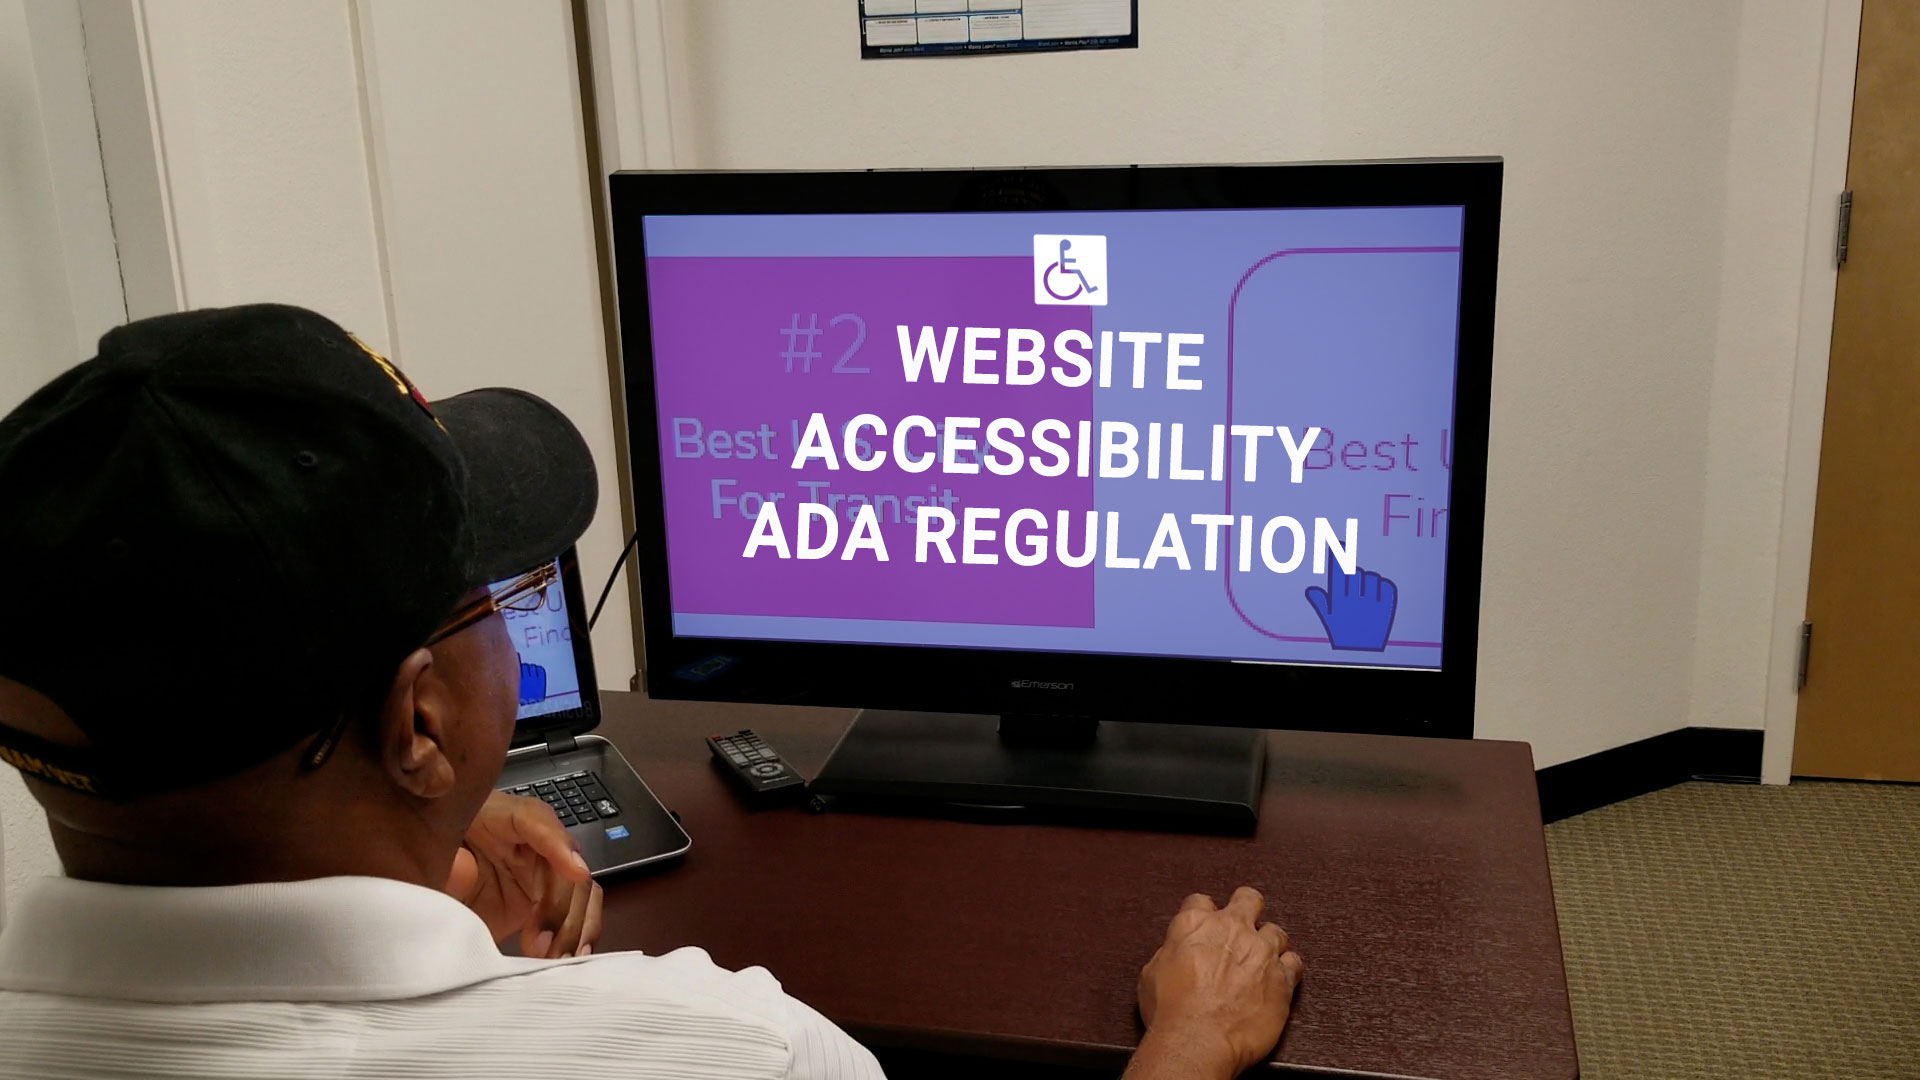 a black man navigating a website using special zoom software for the visually impaired. Text on computer screen says website accessibility ada regulation